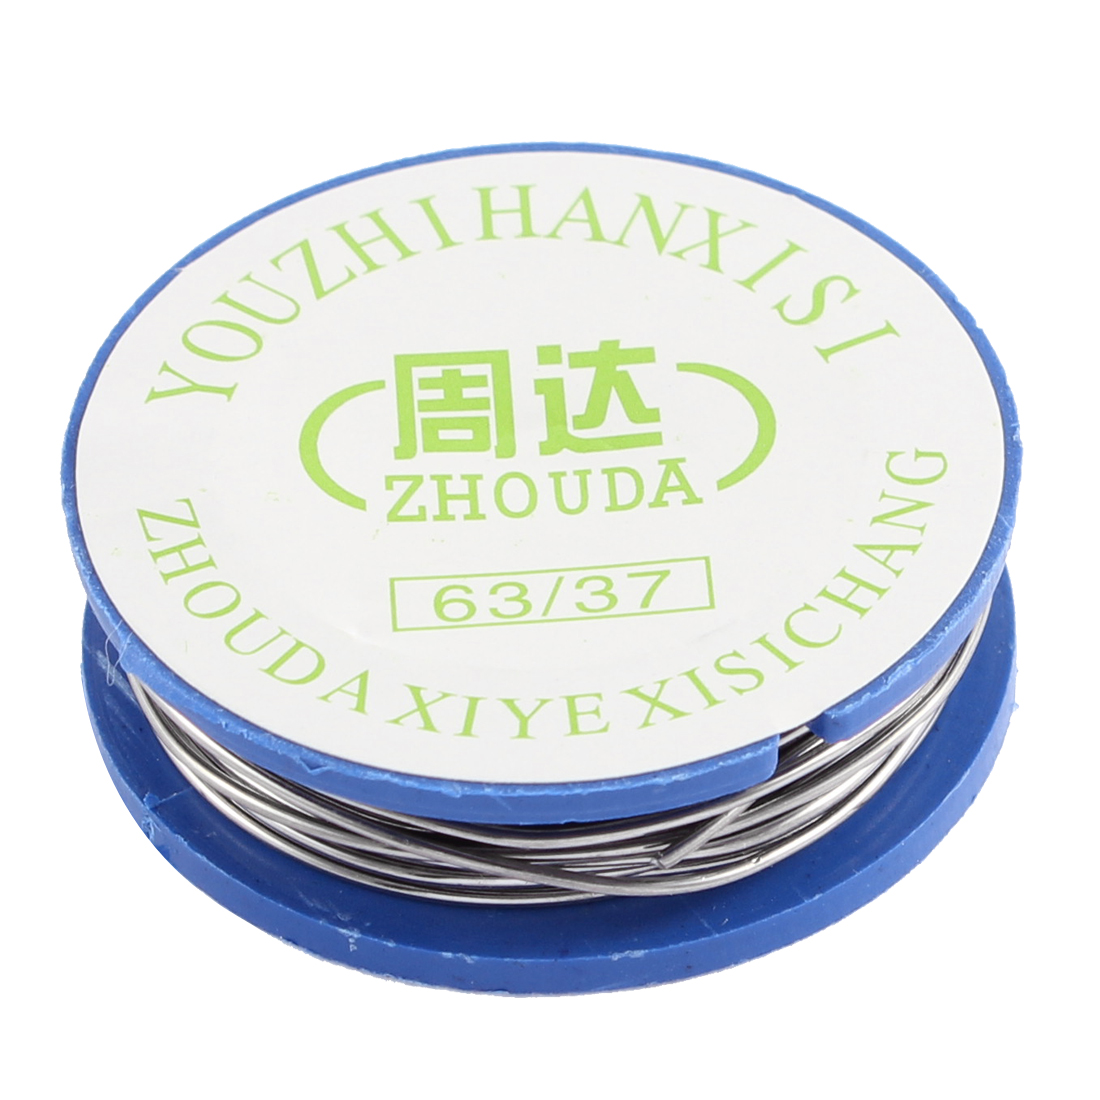 0.7mm Dia 63/37 Fine Tin Lead Rosin Core Flux Soldering Solder Wire Reel